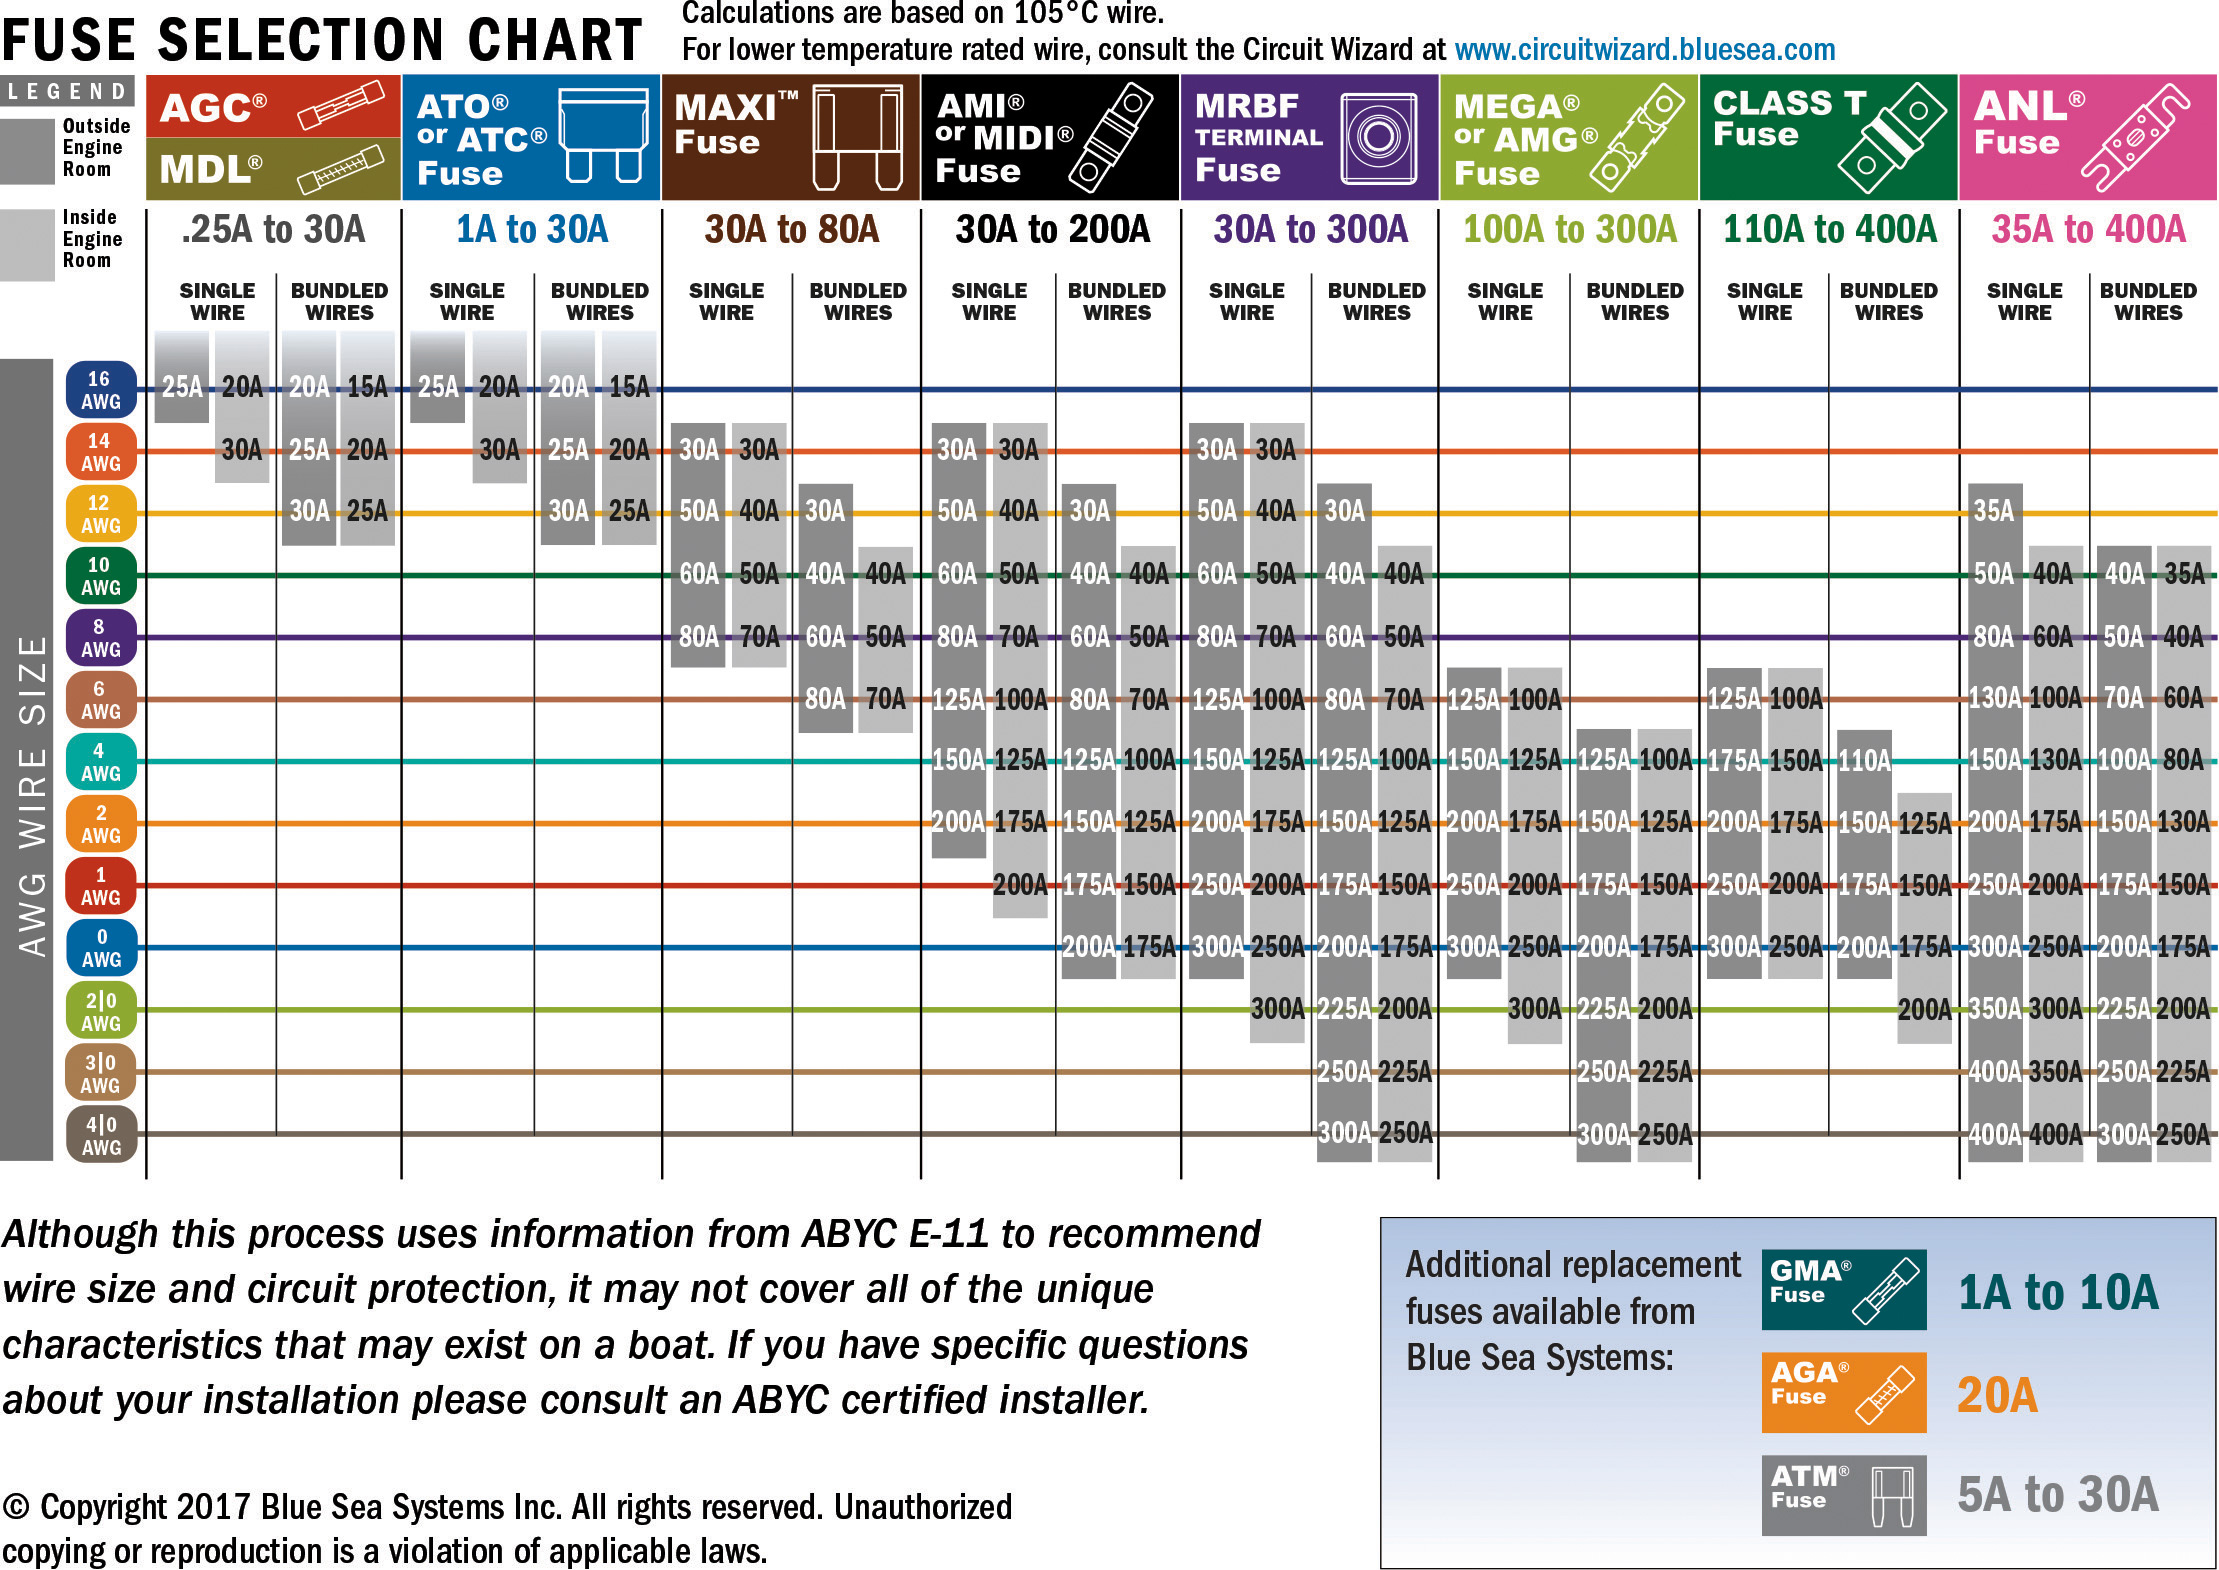 Correct fuse size wiring diagram services free photo rounded fuse box pipe rounded old free download rh jooinn com calculate correct fuse size choosing the correct fuse size greentooth Choice Image